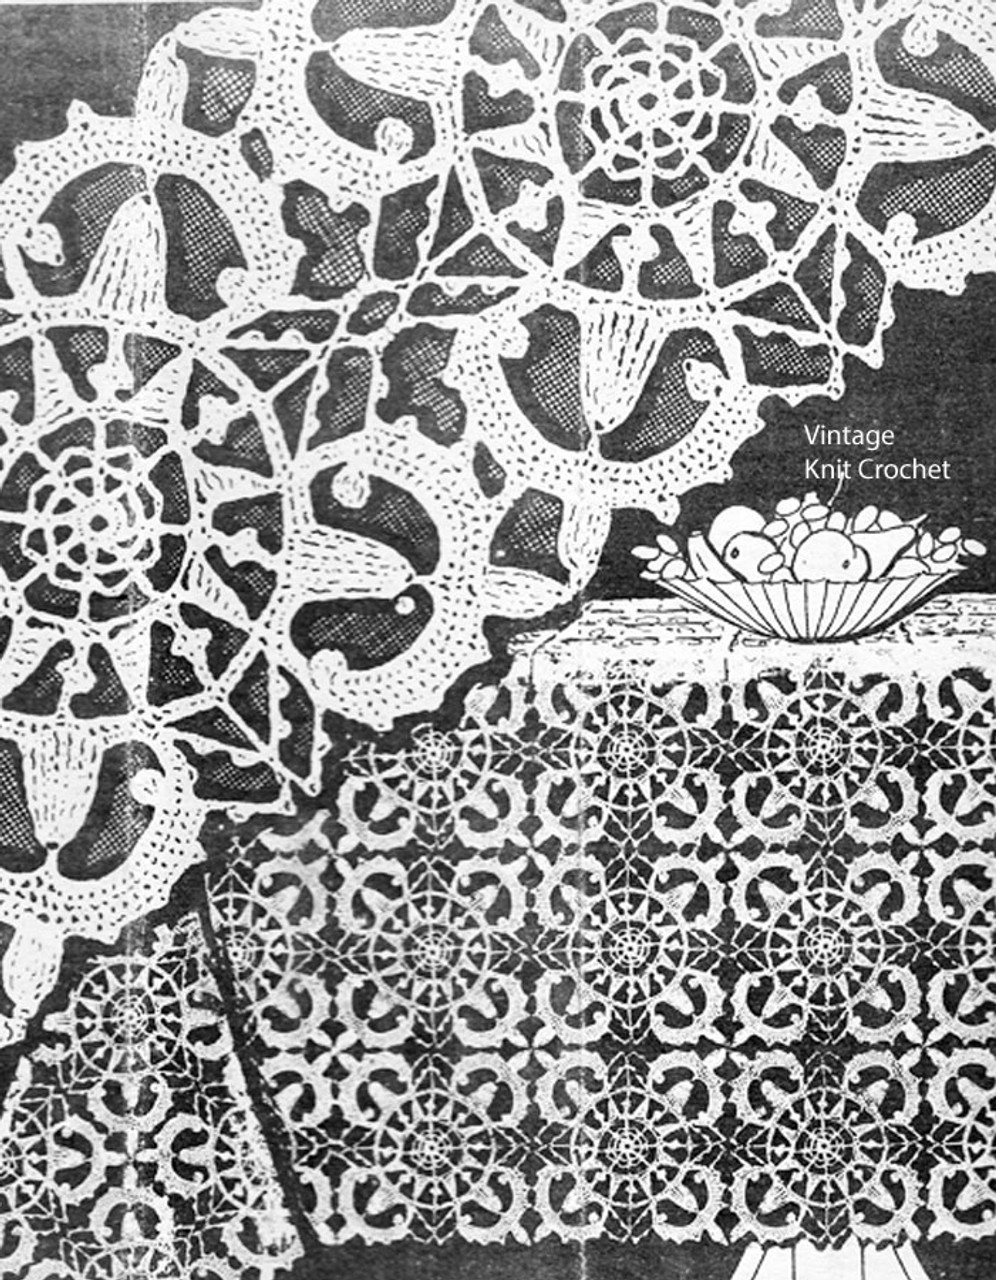 Crocheted Lace Tablecloth Pattern, Laura Wheeler 1385